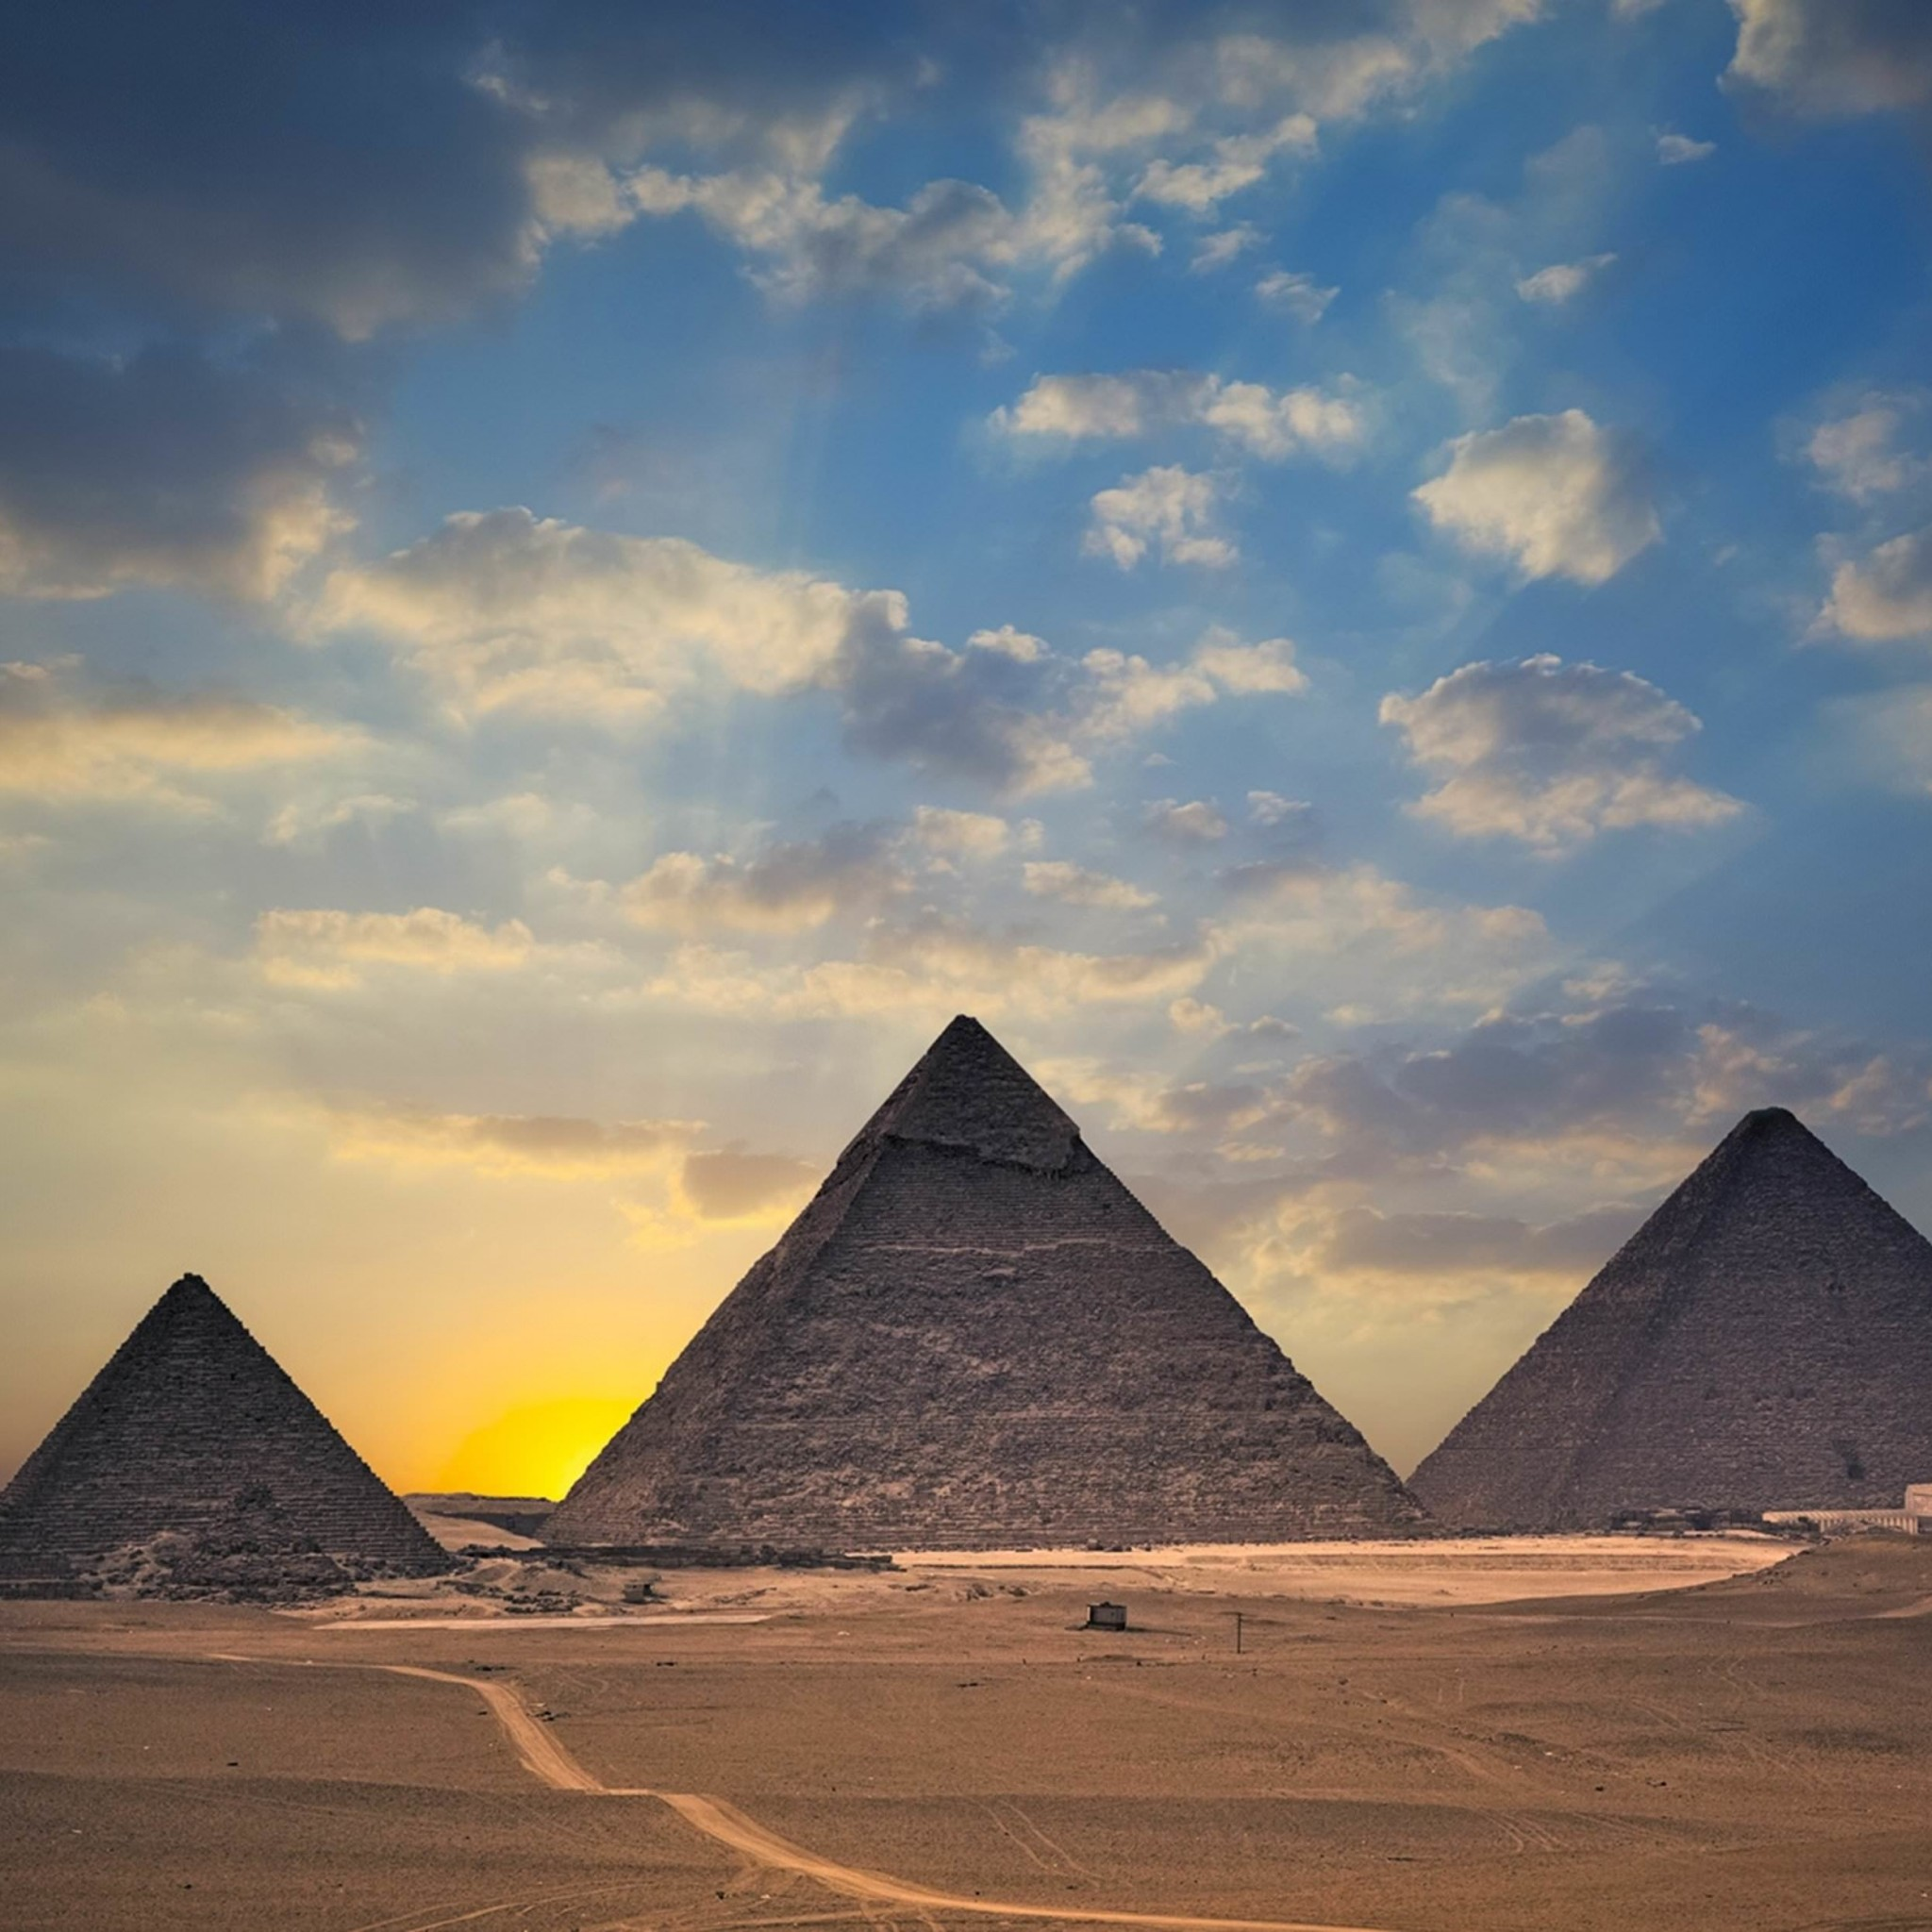 The Great Pyramids of Giza Wallpaper for Google Nexus 9